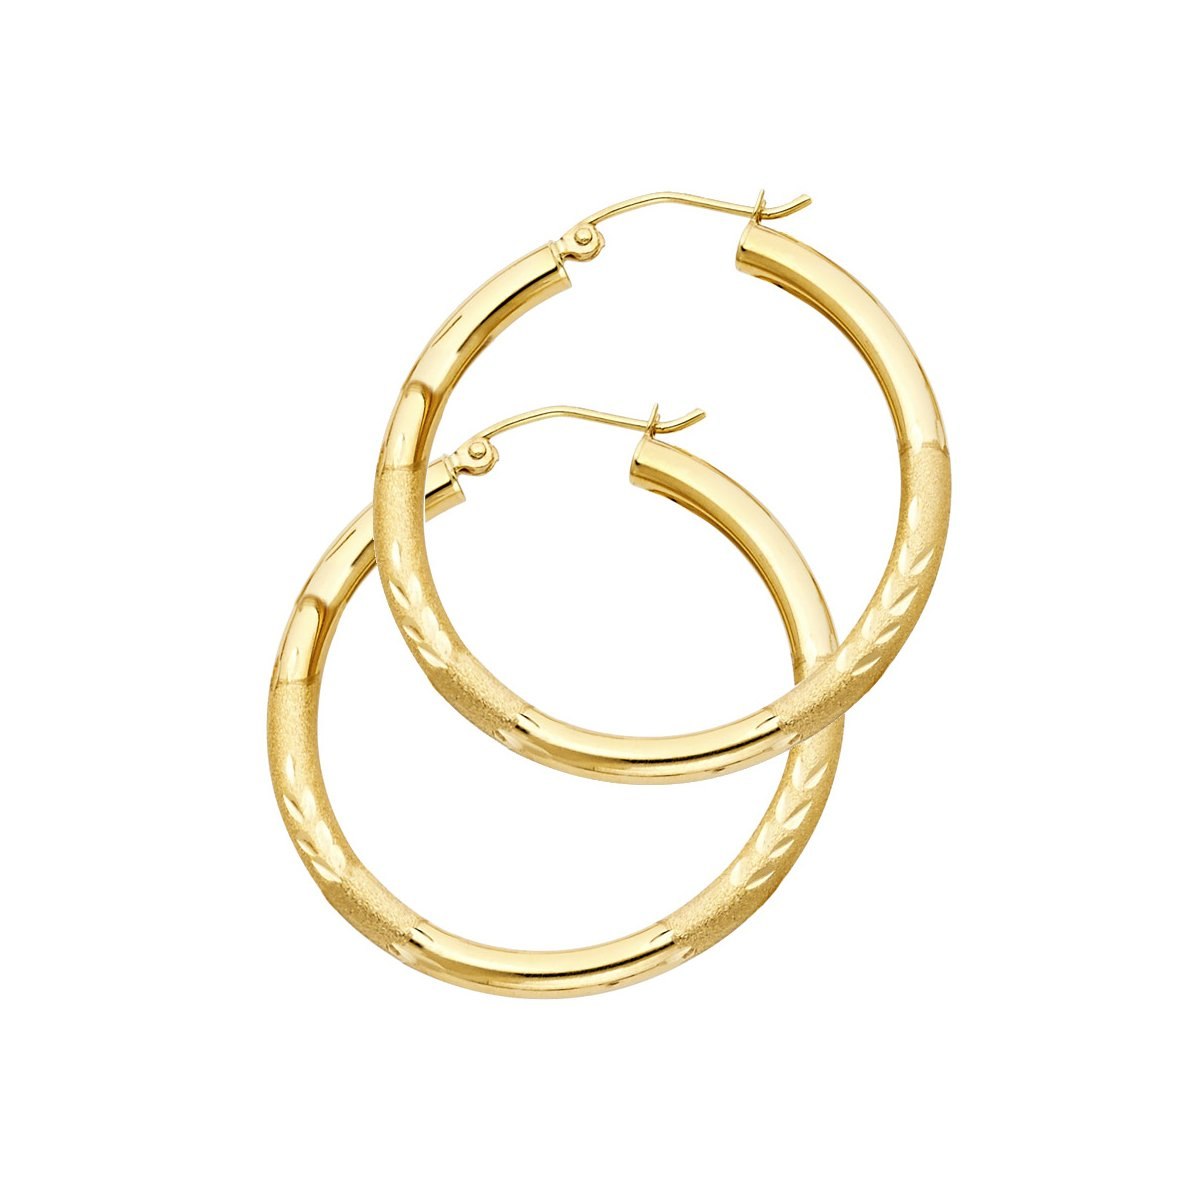 TGDJ 14k Yellow Gold 3mm Thickness Hinged Diamond Cut Hoop Earrings - (Diameter -35mm)